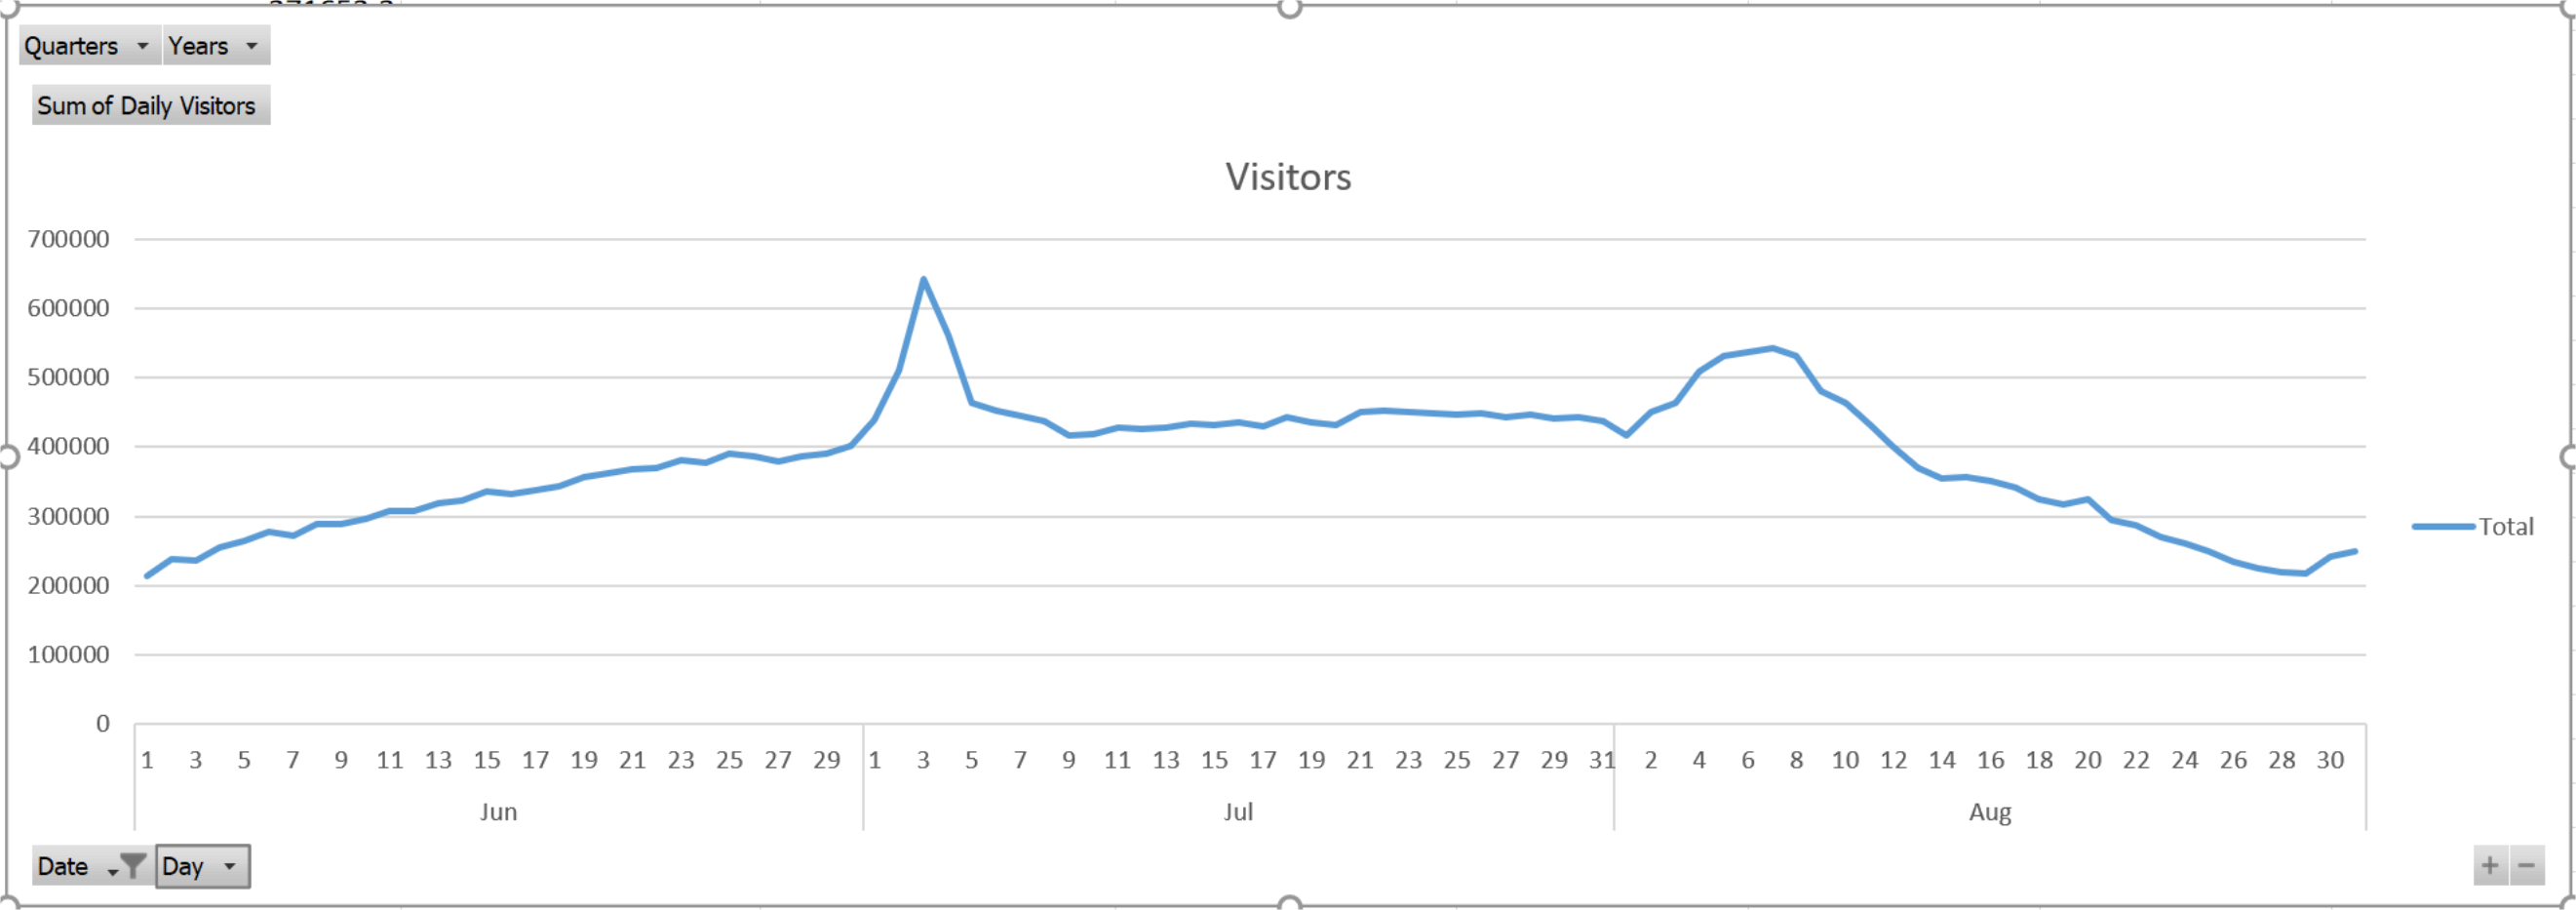 Mount Rushmore attendance data in the summer months